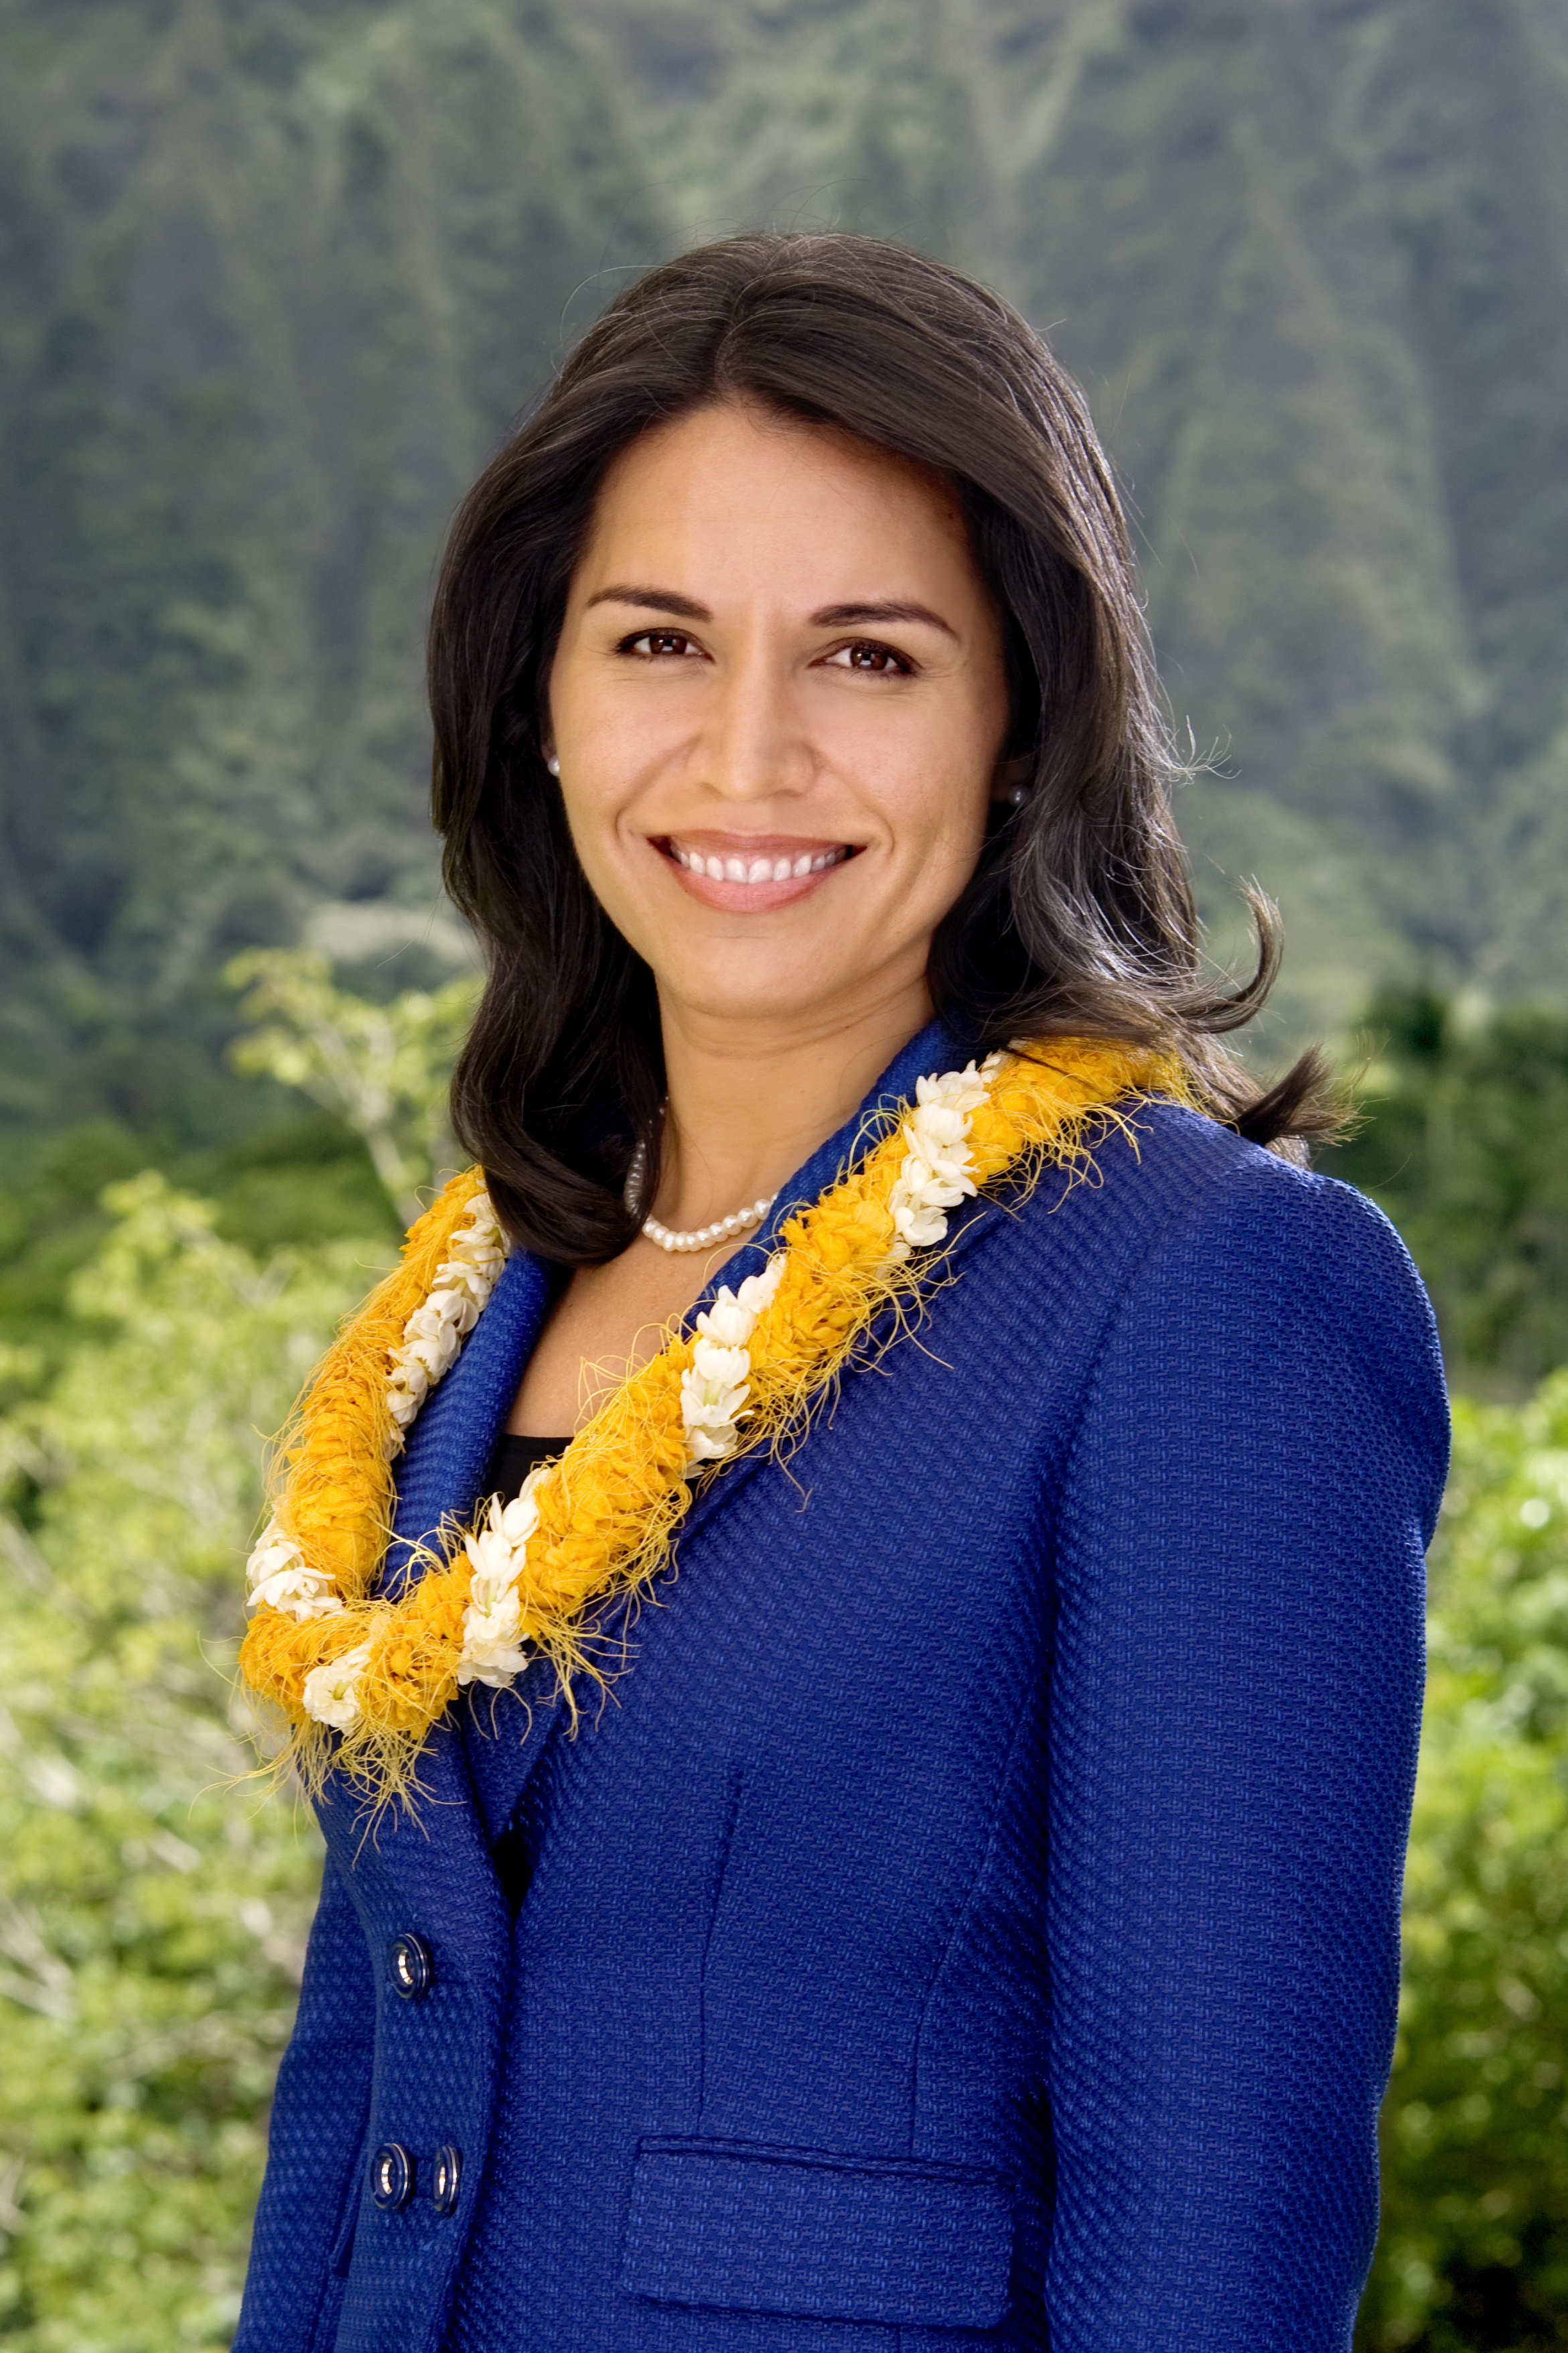 Credit: Official portrait courtesy of the government of the United States via Wikimedia Commo